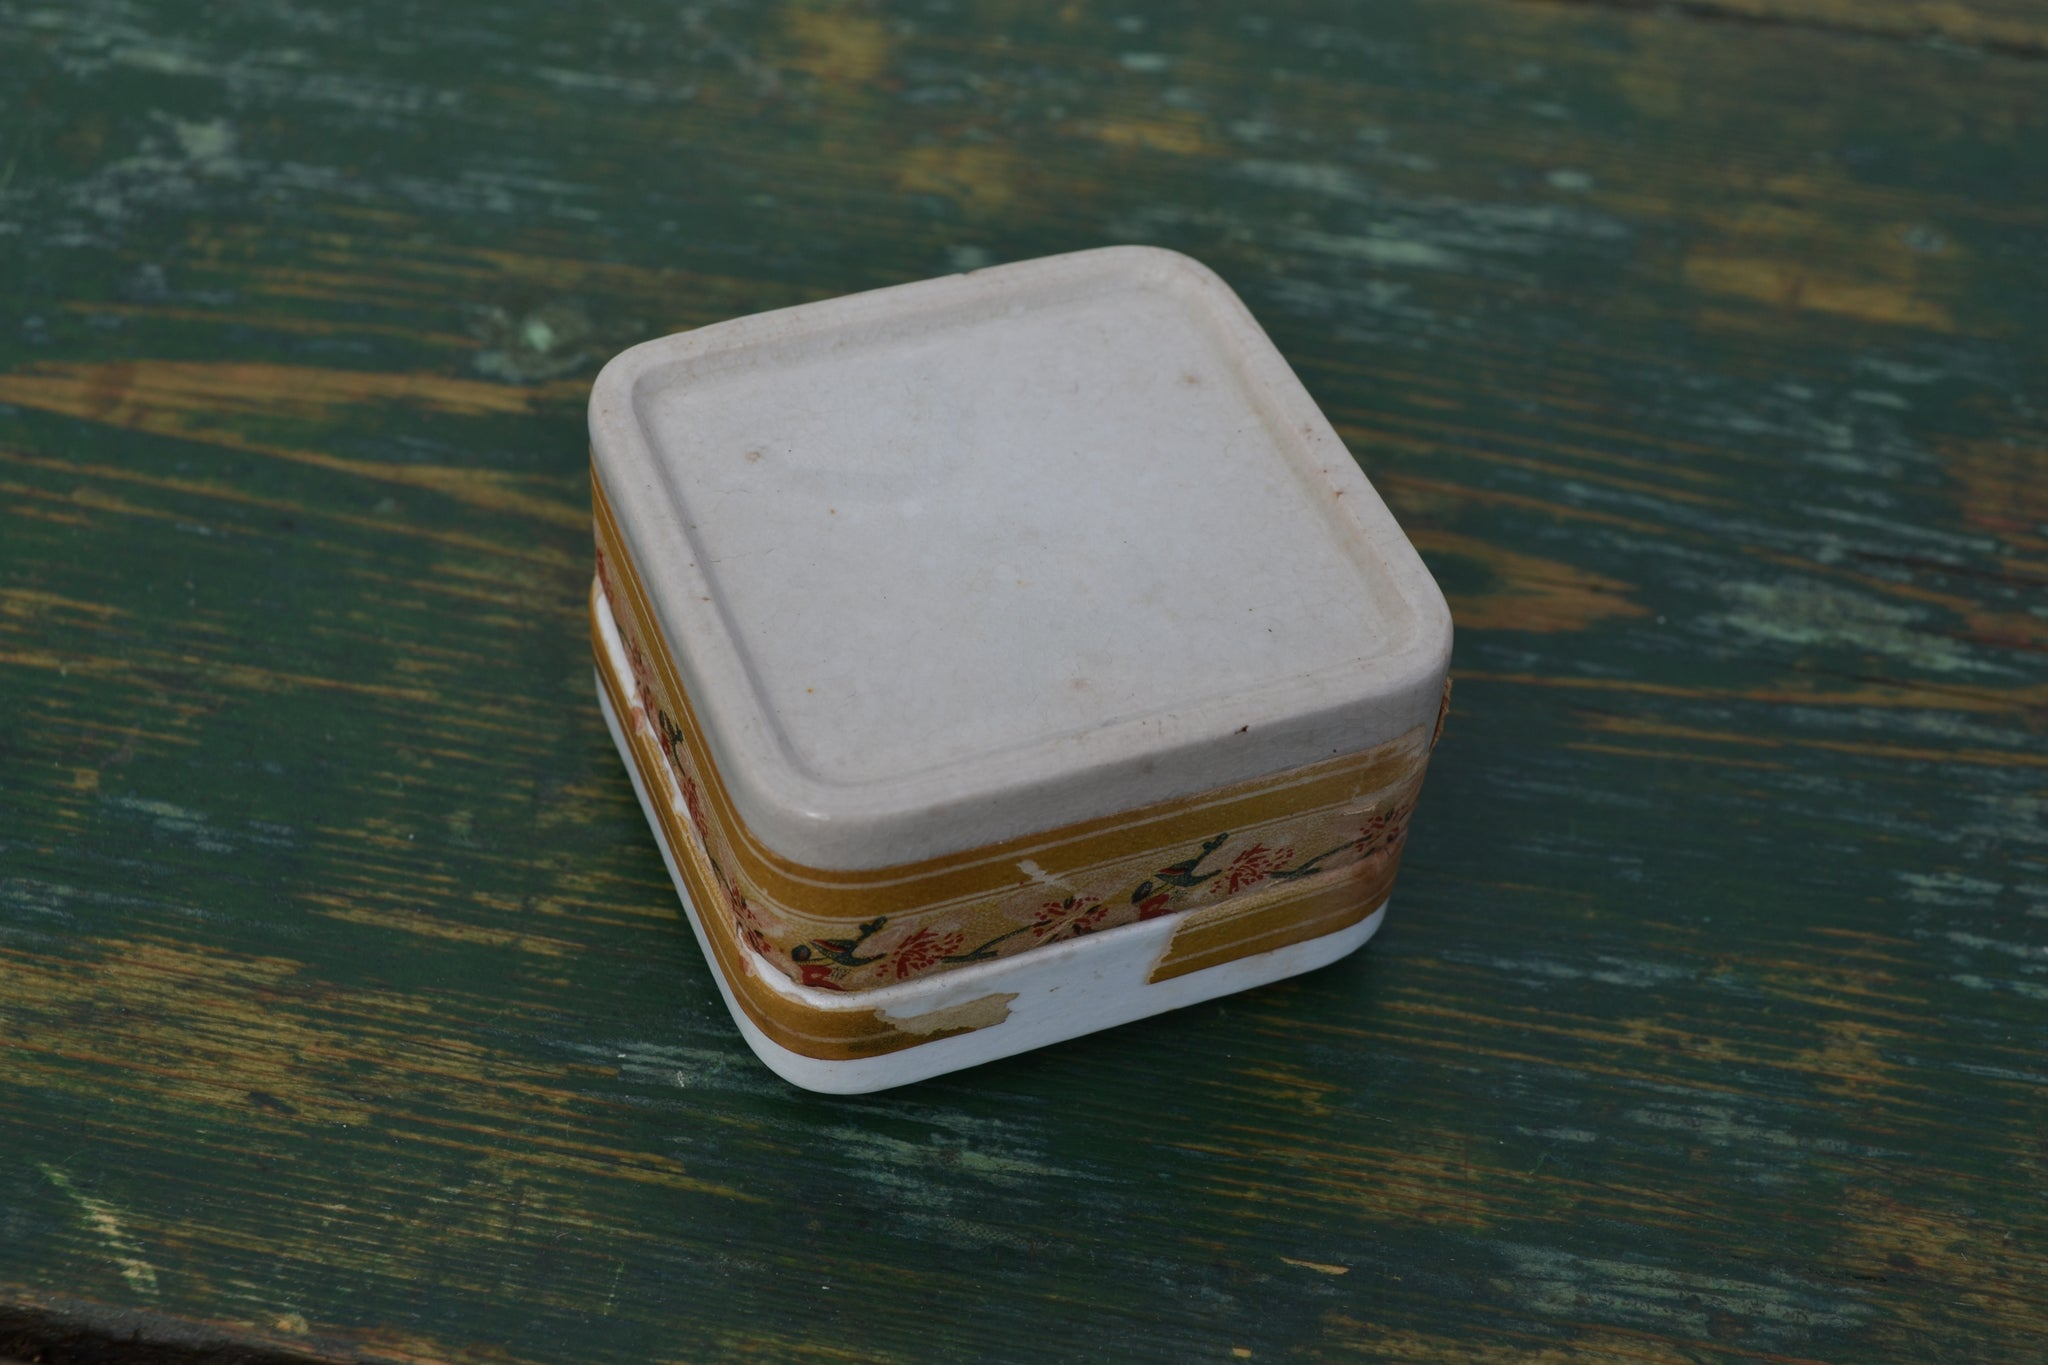 An opened white rose tooth paste pot with original contents and paper seal